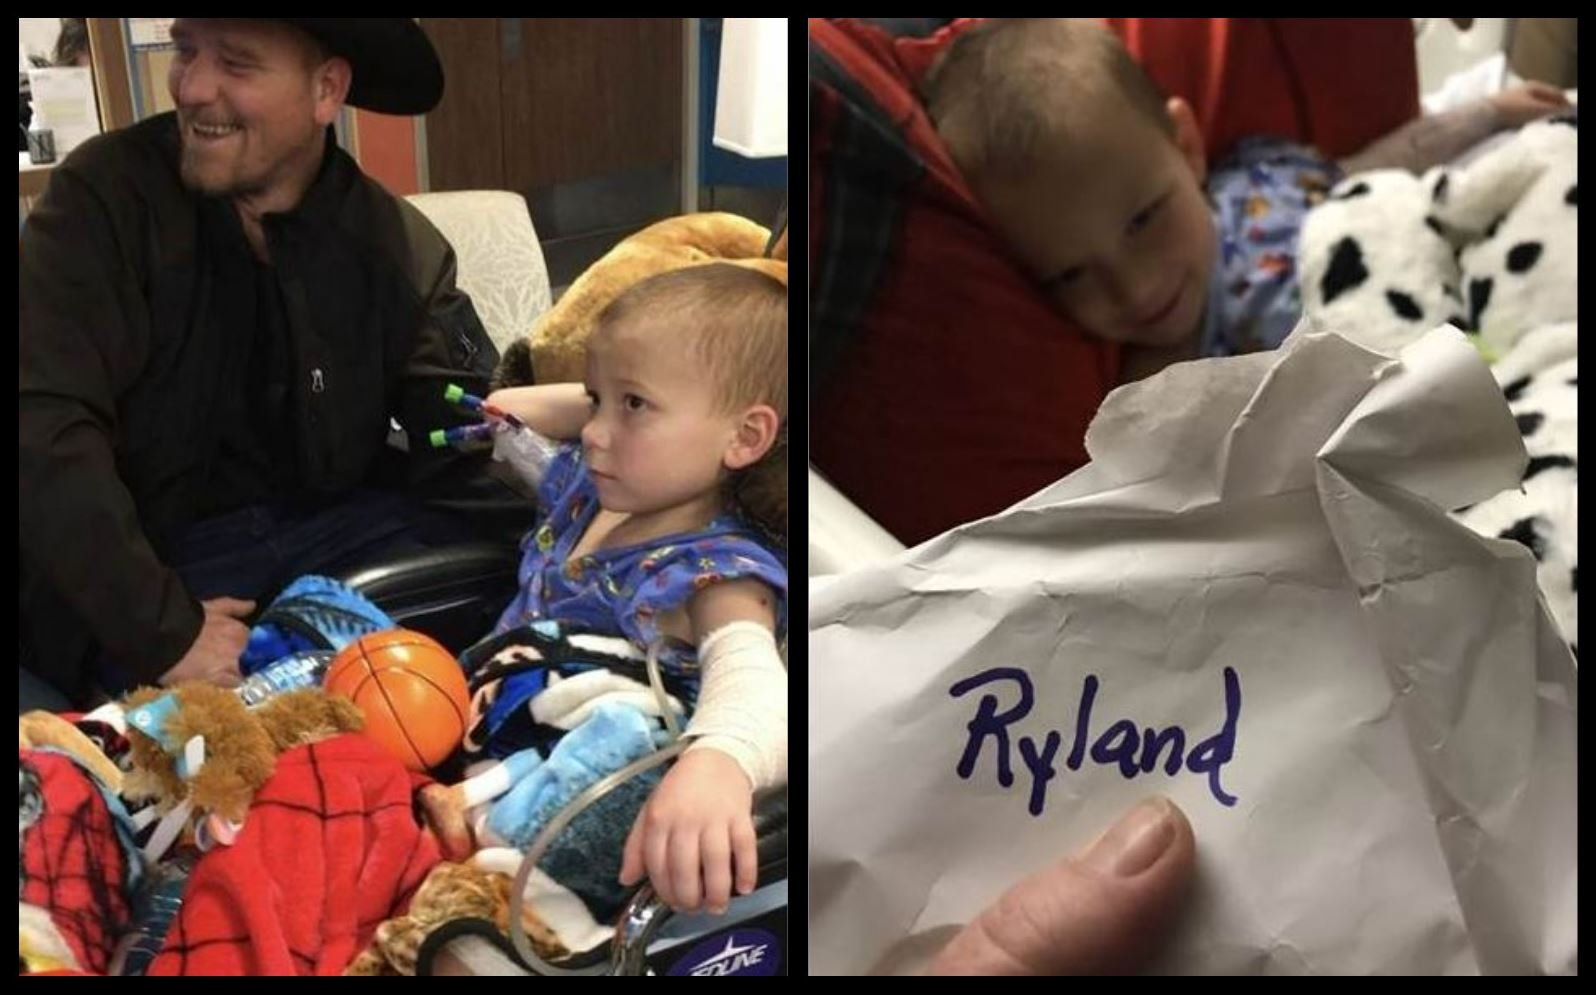 Ryland Ward, 5, who was shot during last month's massacre in Sutherland Springs, Texas, has been receiving get-well cards from people across the U.S.